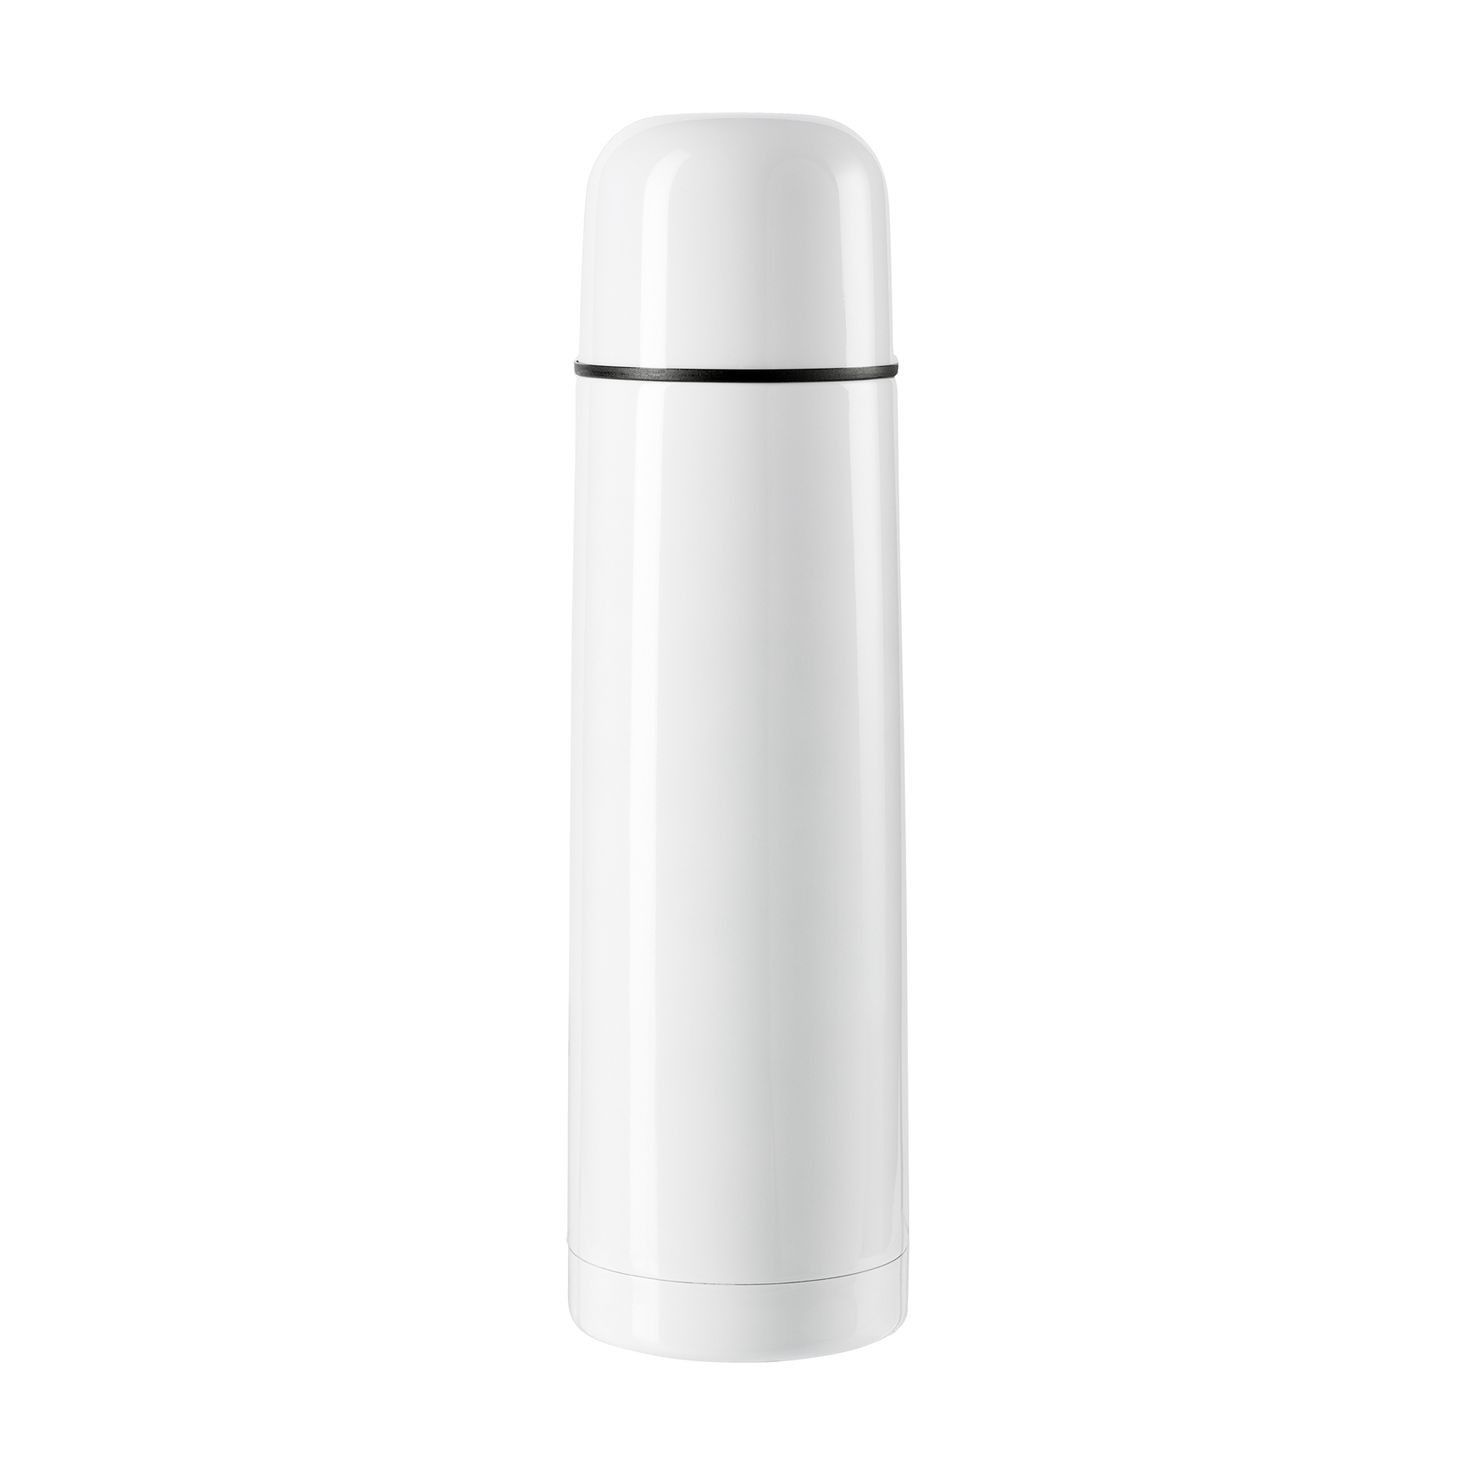 Witte Thermosfles | Vacuüm | 500 ml